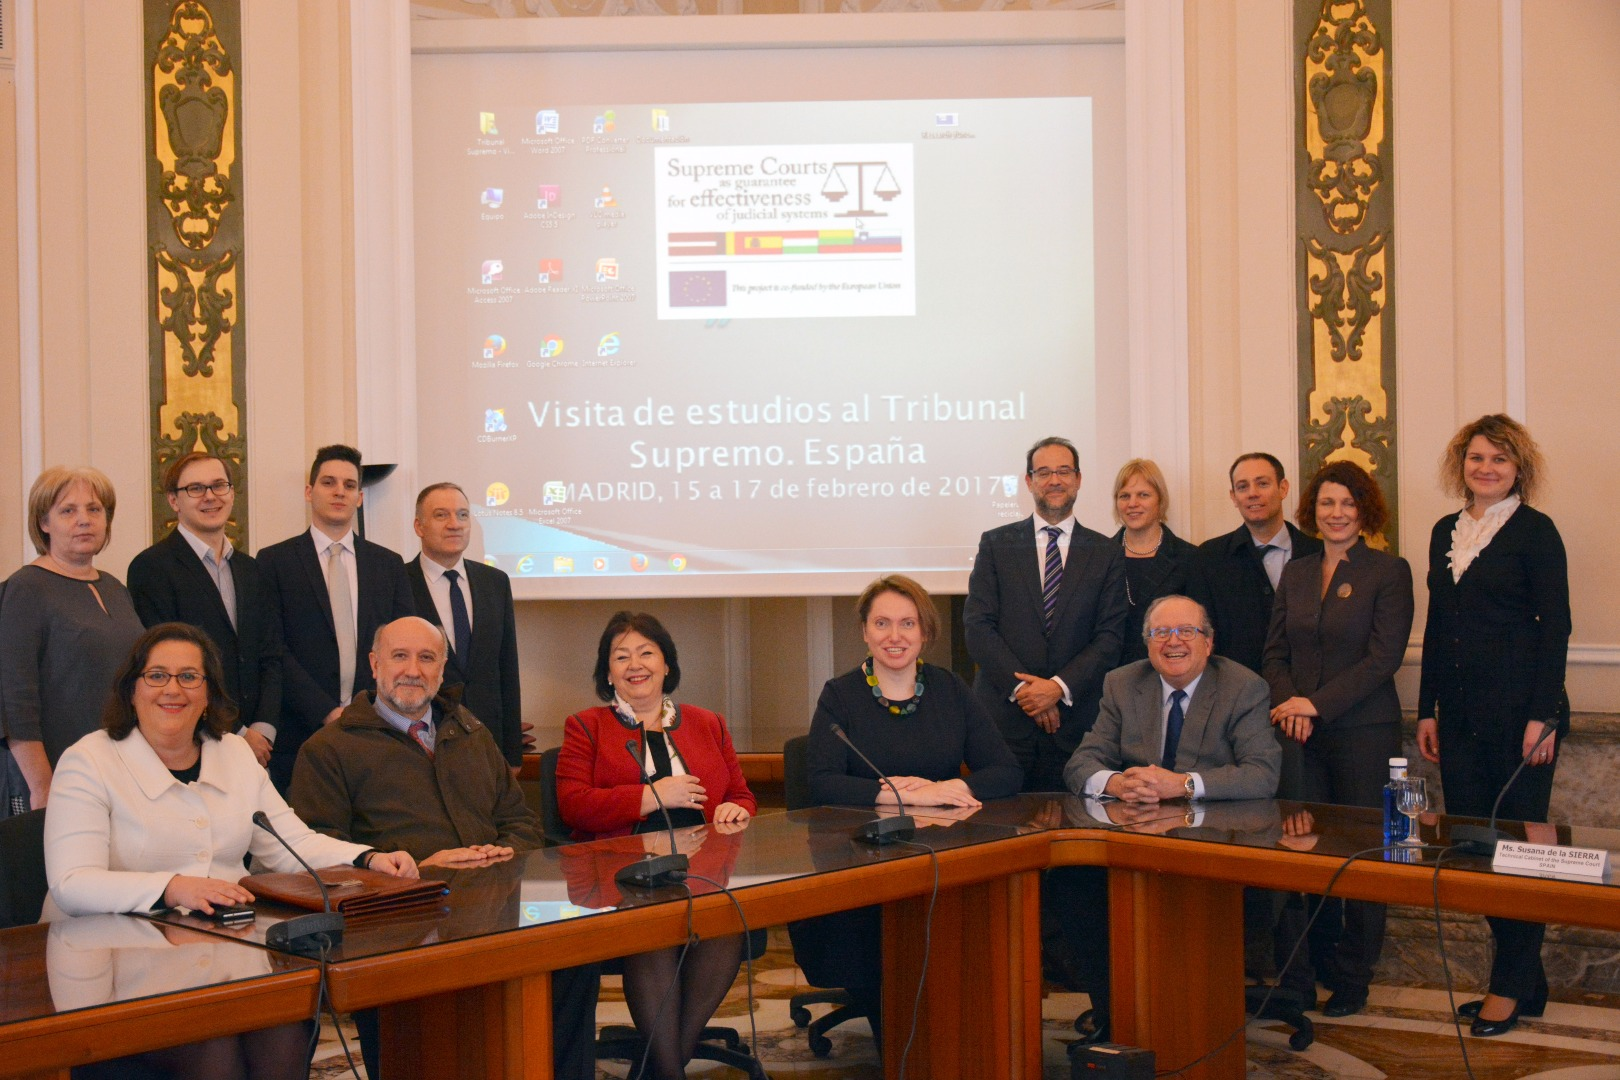 Representatives of Supreme Courts of Spain, Lithuania, Latvia and Hungary meet at the Supreme Court of Spain